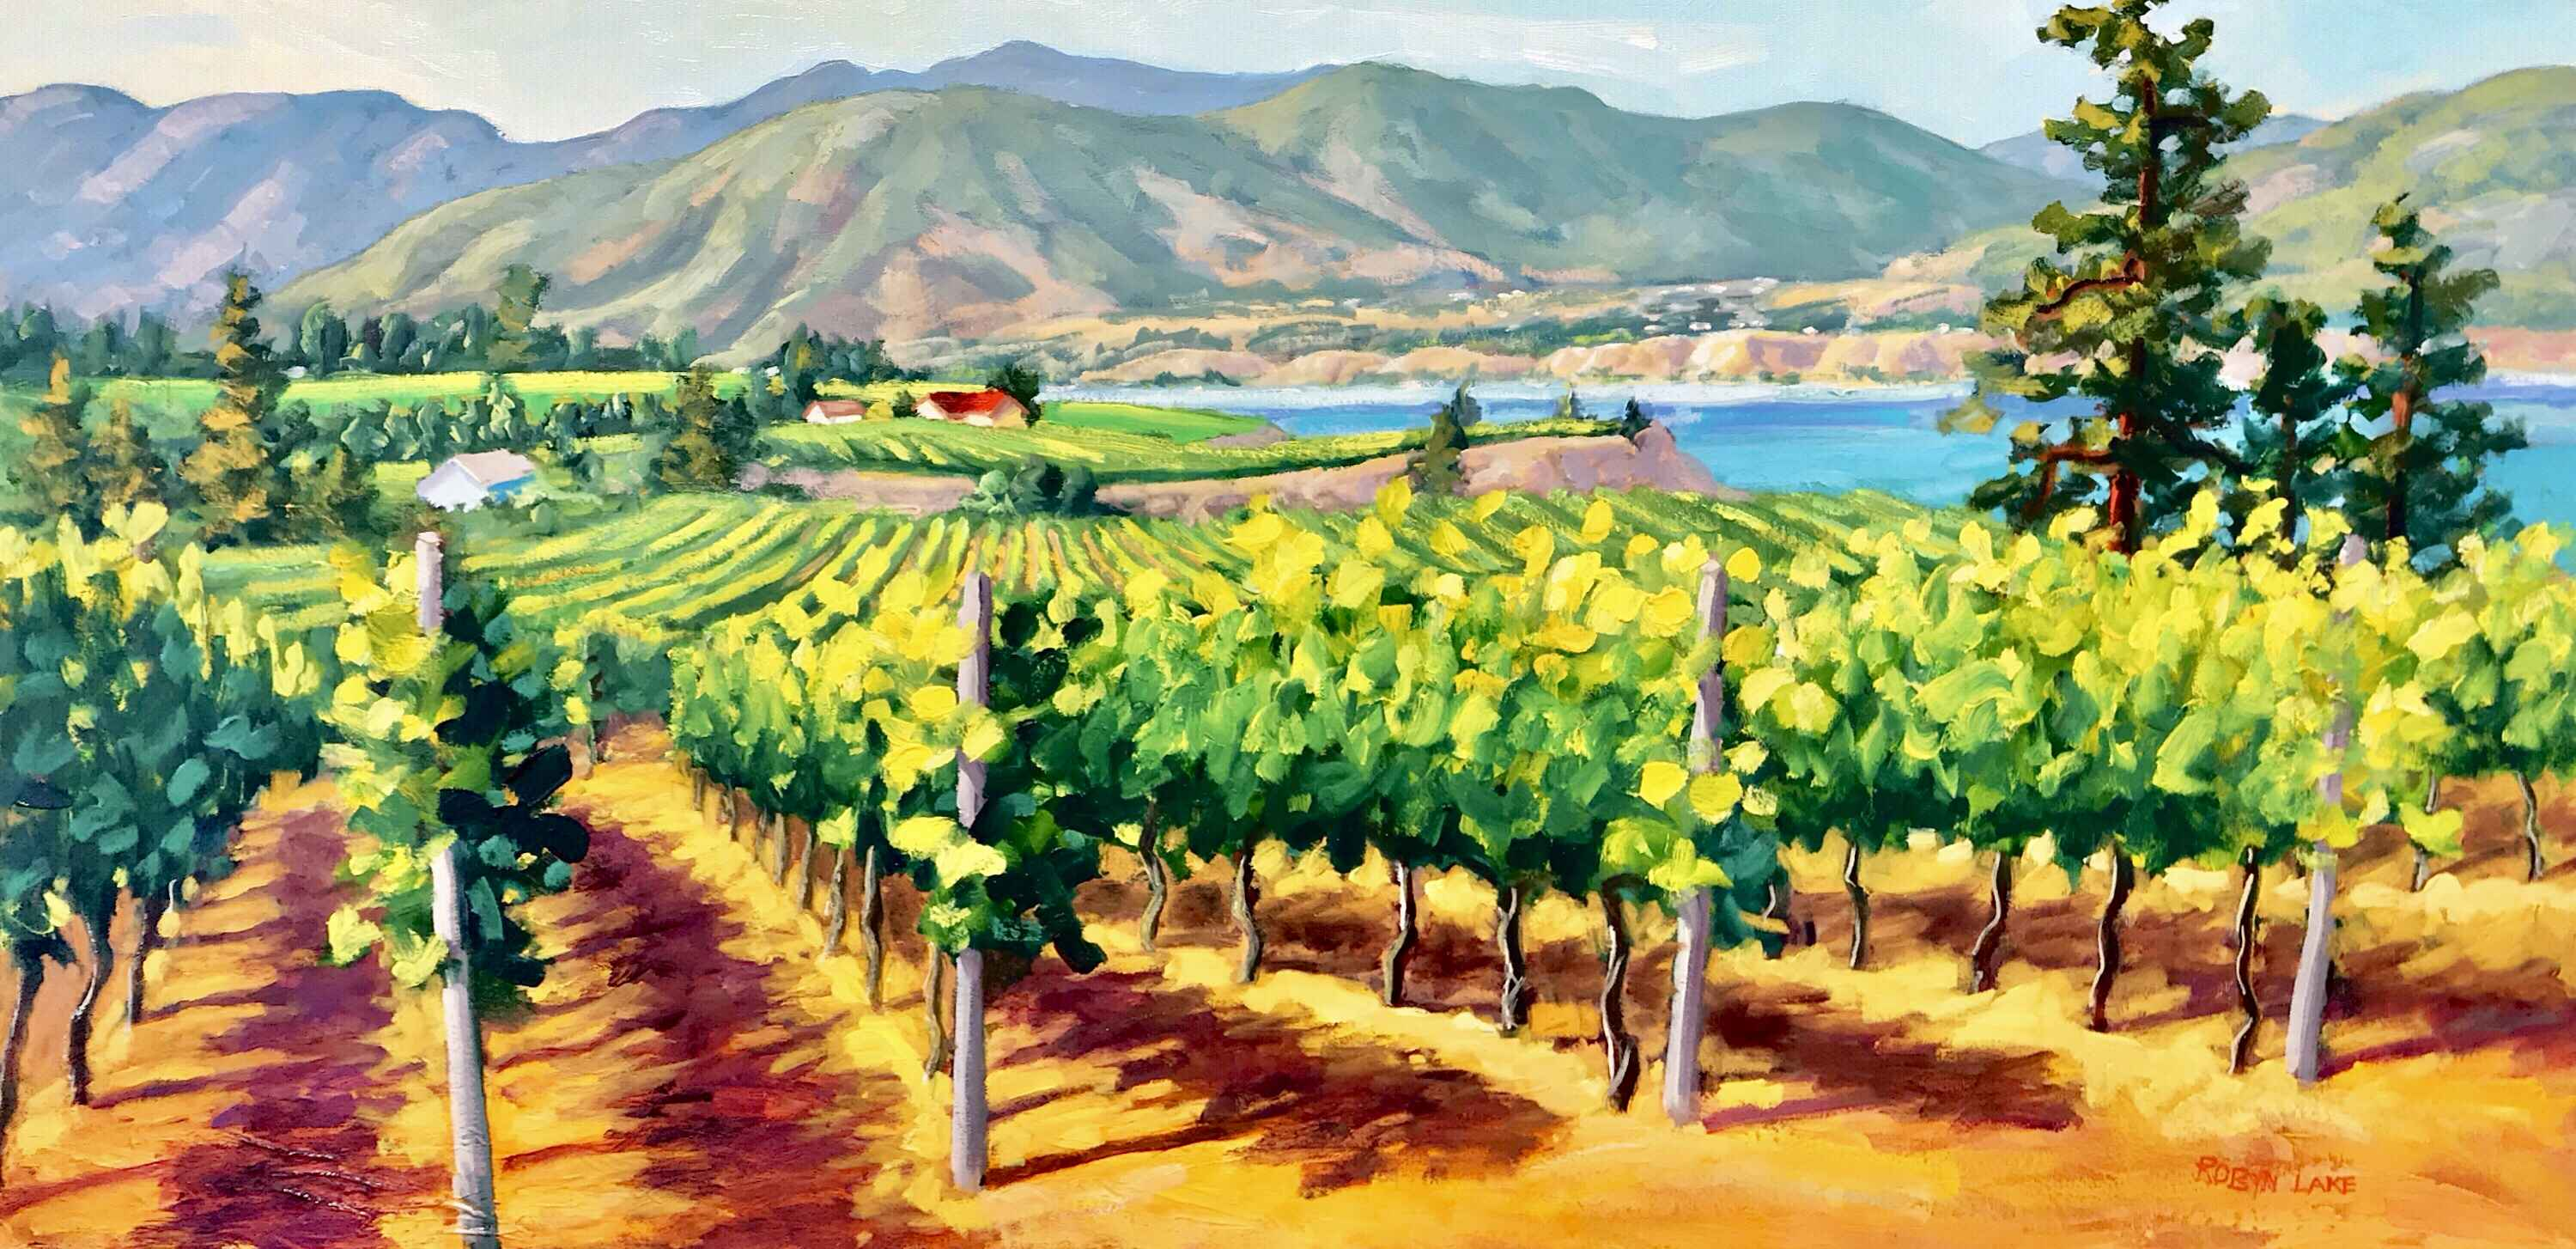 Summer Light by  Robyn Lake - Masterpiece Online